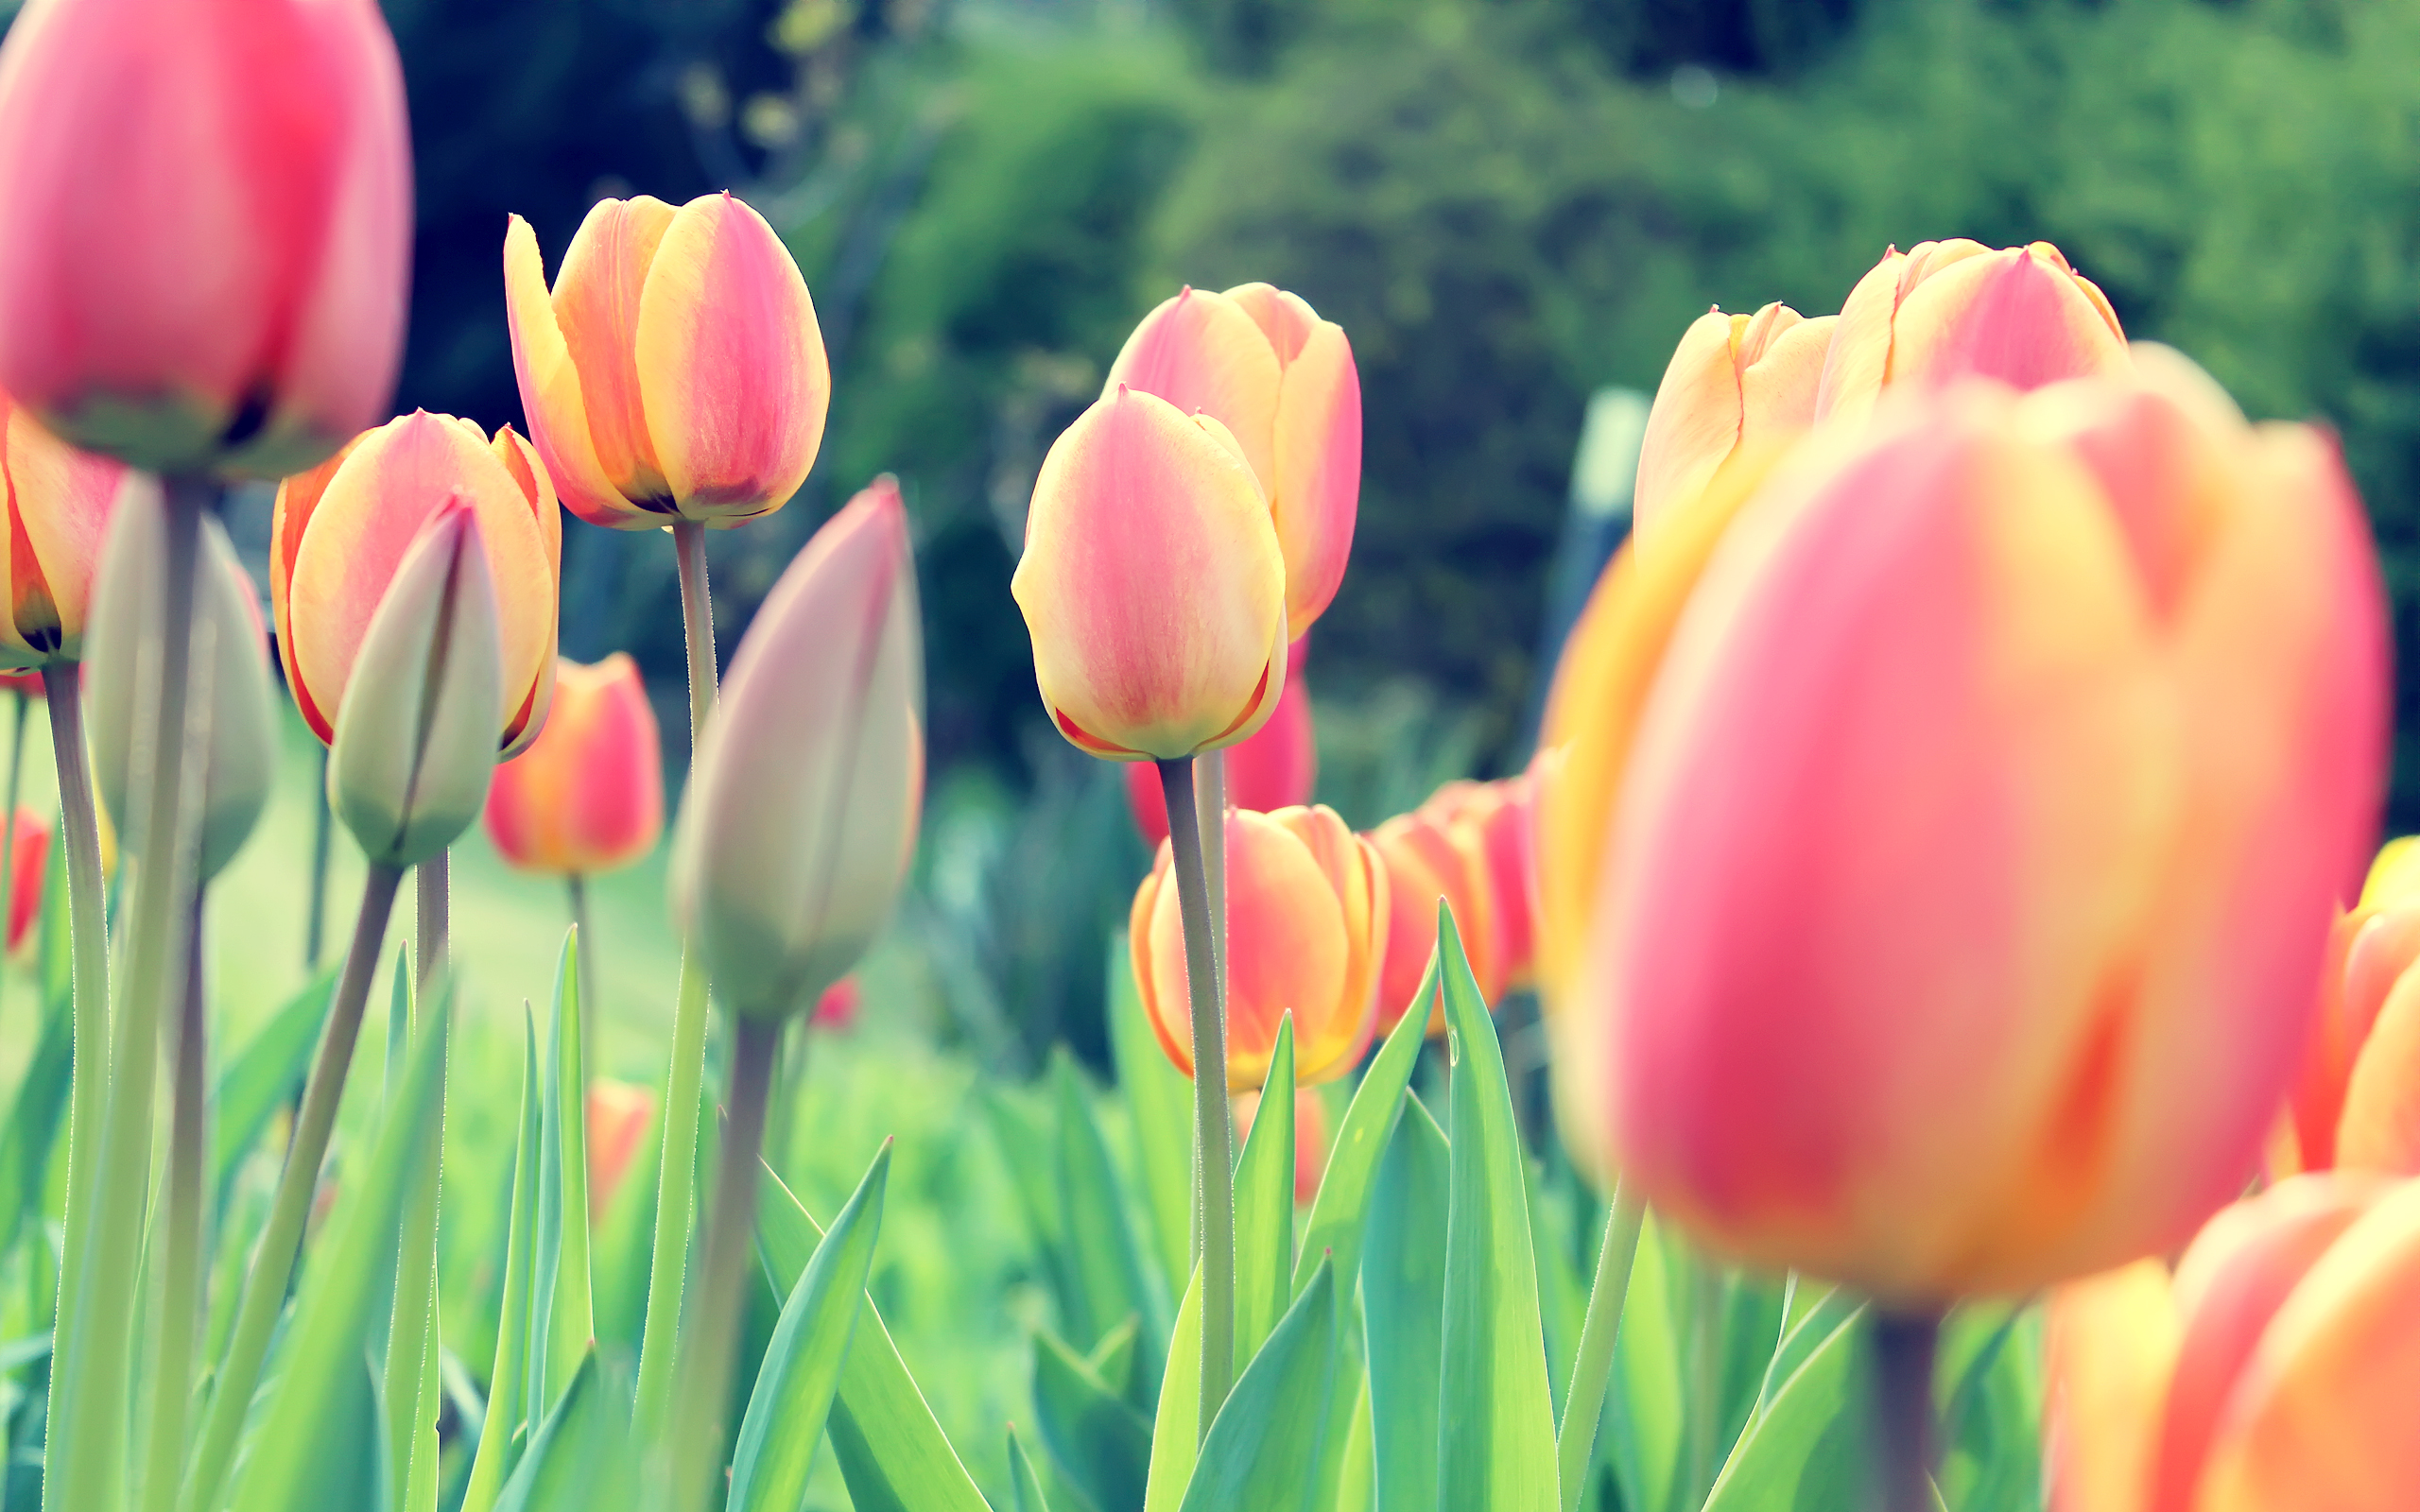 Hd wallpaper easter - Easter Tulips Wallpapers Hd Wallpapers